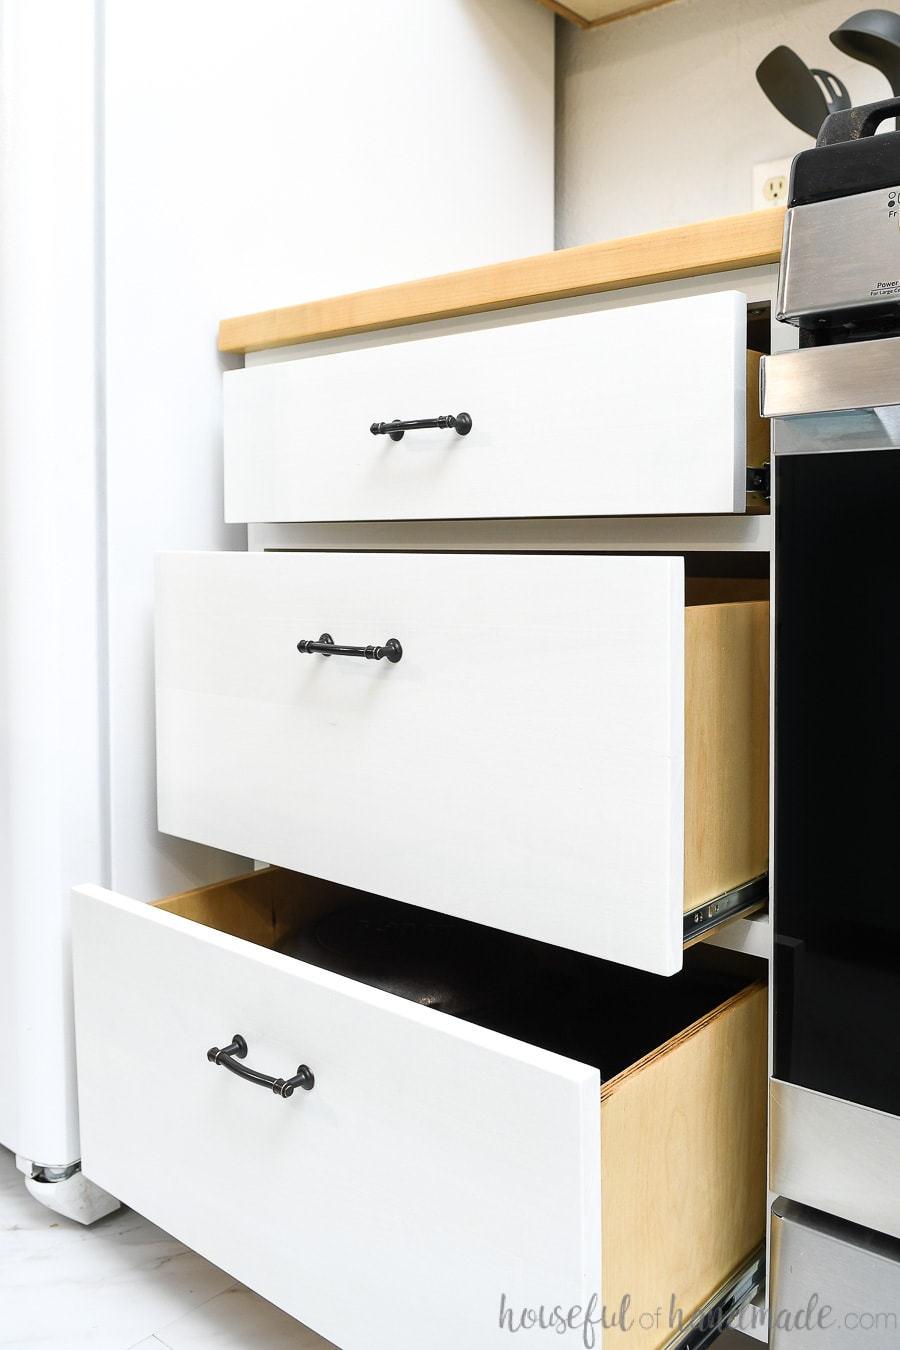 Three drawer cabinet next to a stove with the drawers pulled out in steps.